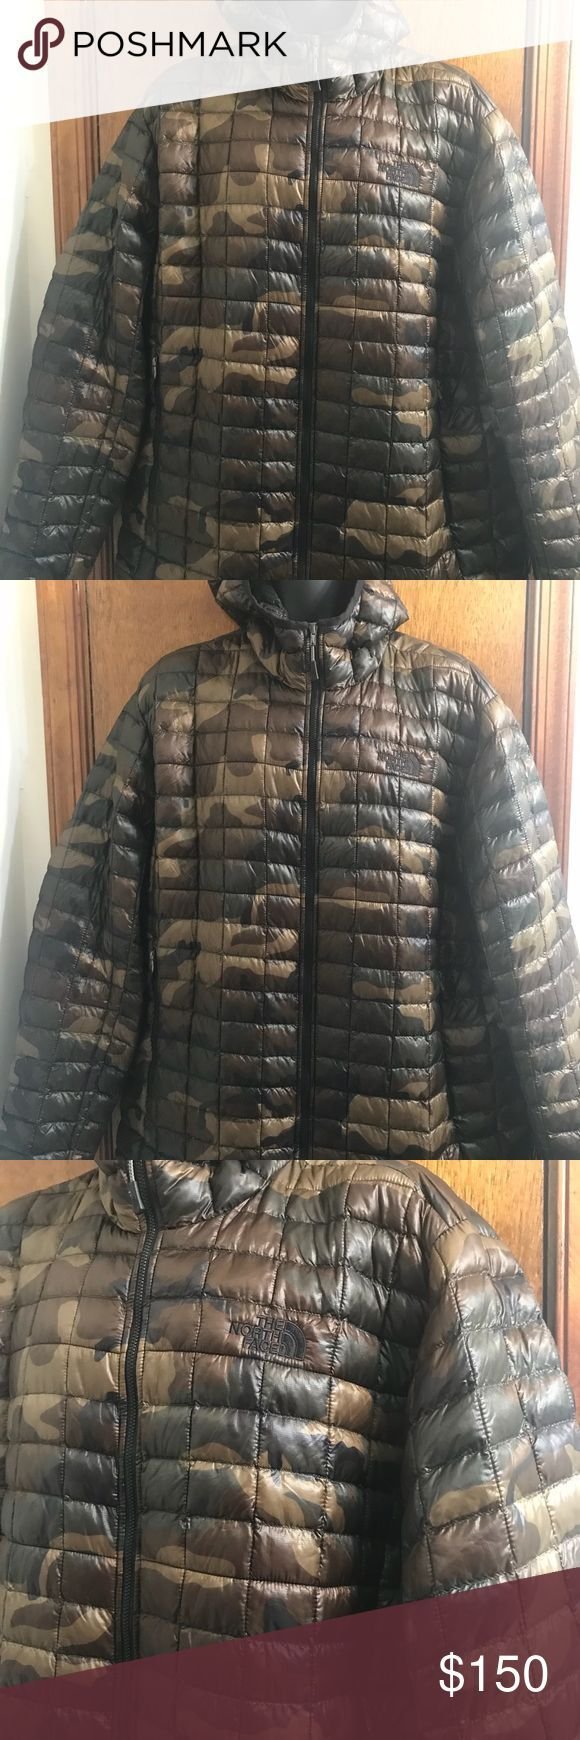 """THE NORTH FACE Thermoball jacket camo Size xxl 2xl THE NORTH FACE FALL WINTER COAT CAMO JACKET THERMOBALL MEN'S SIZE 2XL XXL $199 New without tags 100% nylon  Pit to pit 27"""" Sleeves 27"""" Length 31"""" The North Face Jackets & Coats"""